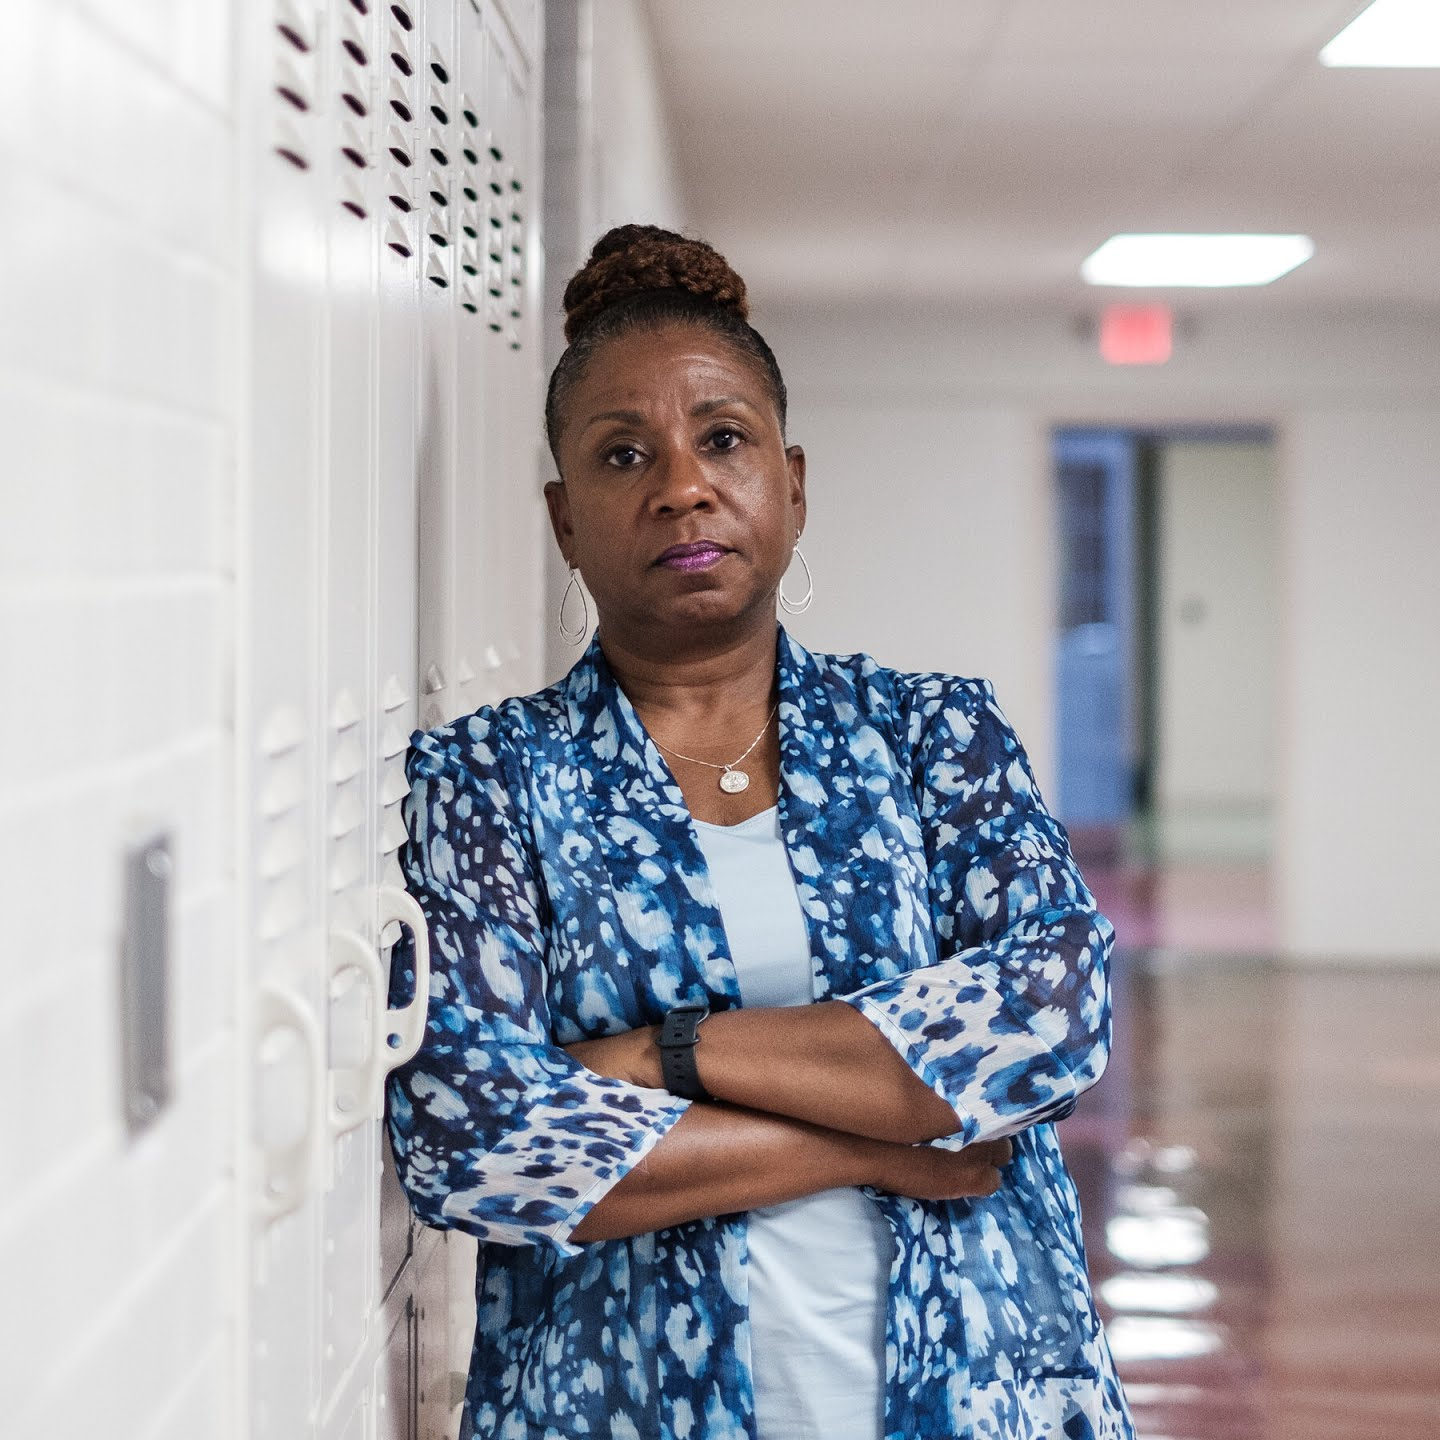 Andrea Kane on her last day as superintendent of schools in Queen Anne's County, Md.